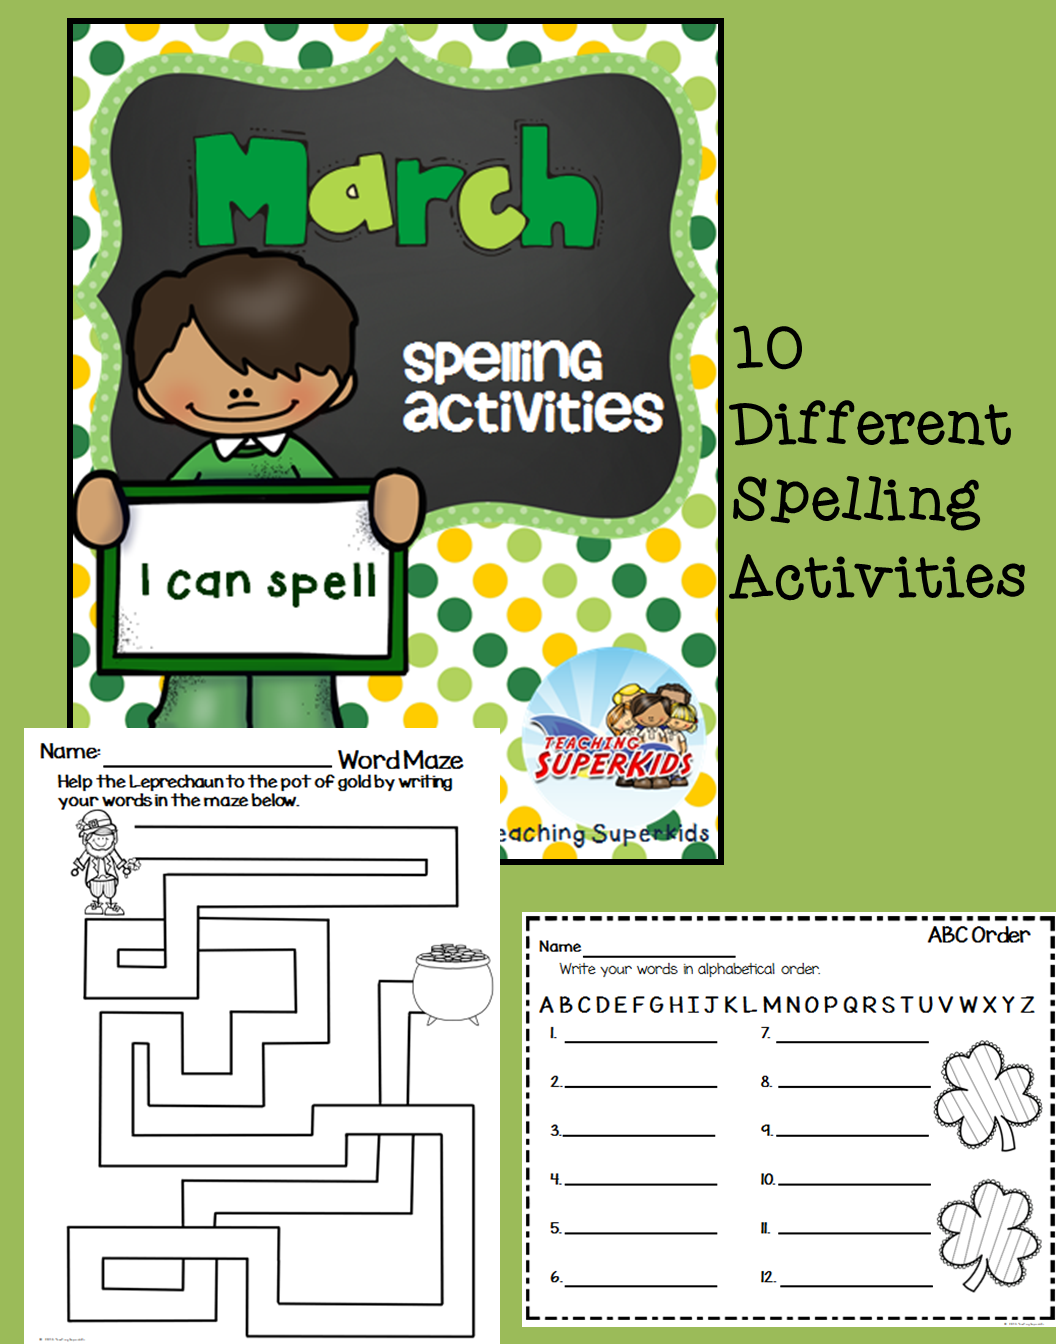 Spelling Activities For March Spelling Activities That Can